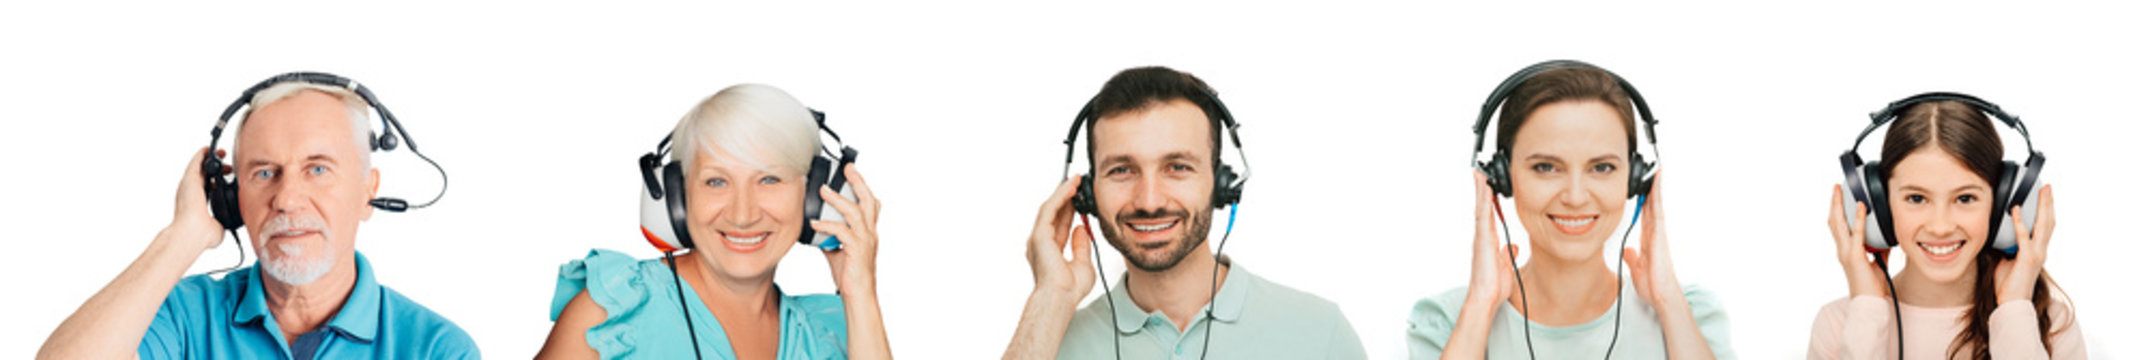 Hearing test, hearing diagnostic, audiometry. People of all ages have a hearing test with special headphones. Audiology for the whole family